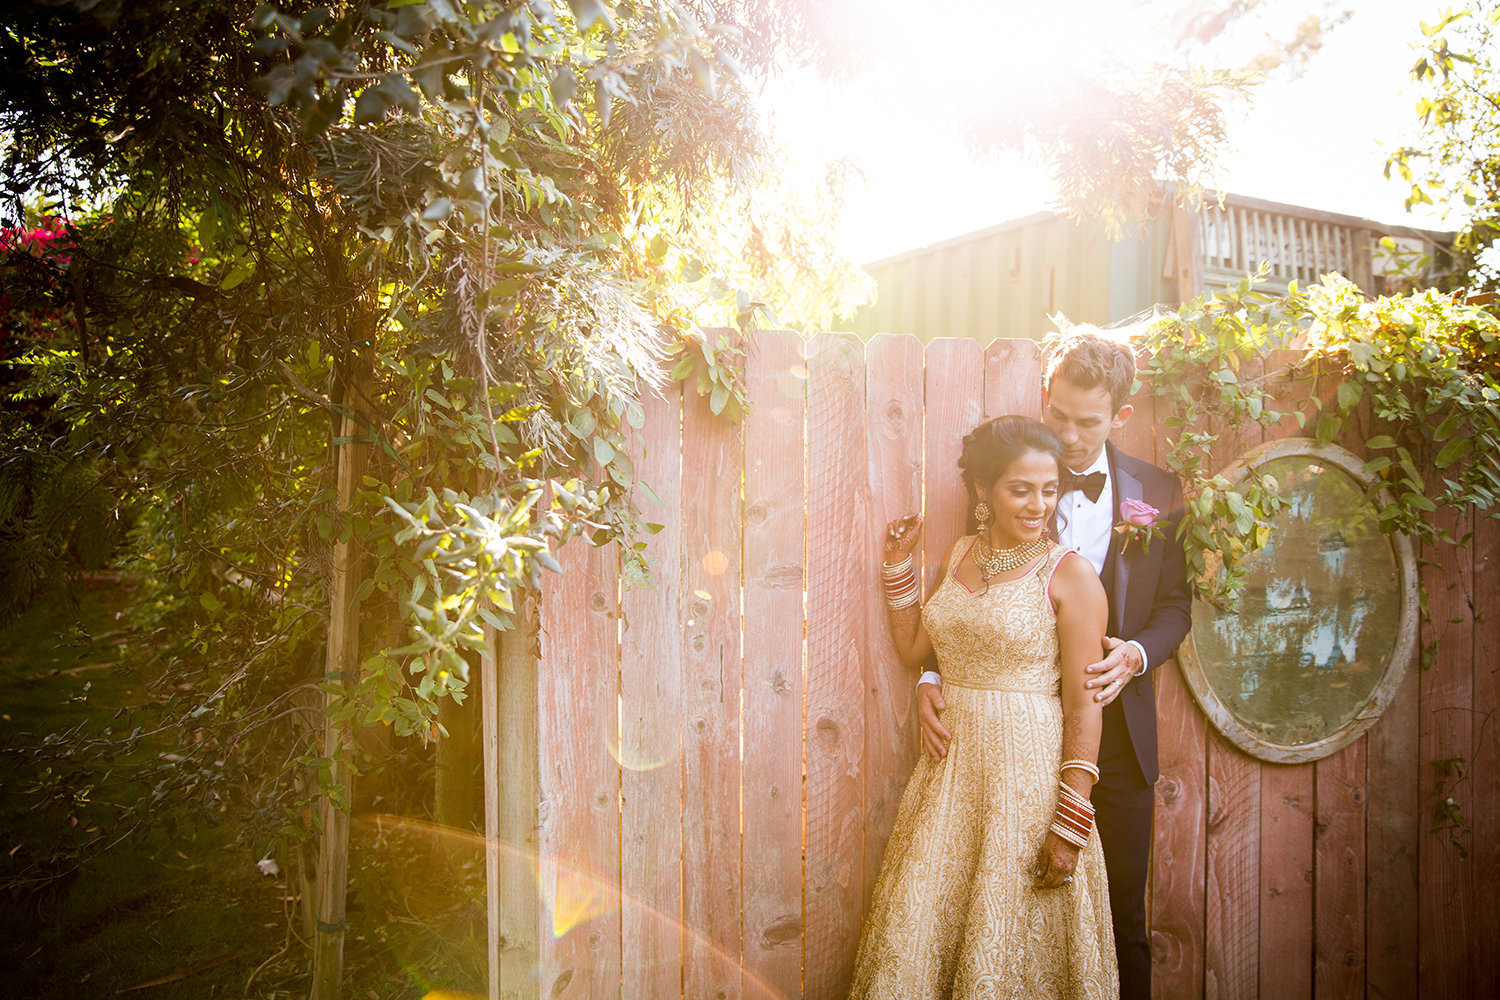 Sunlight Flare with a lovely Hindu Bride and Groom in a Garden